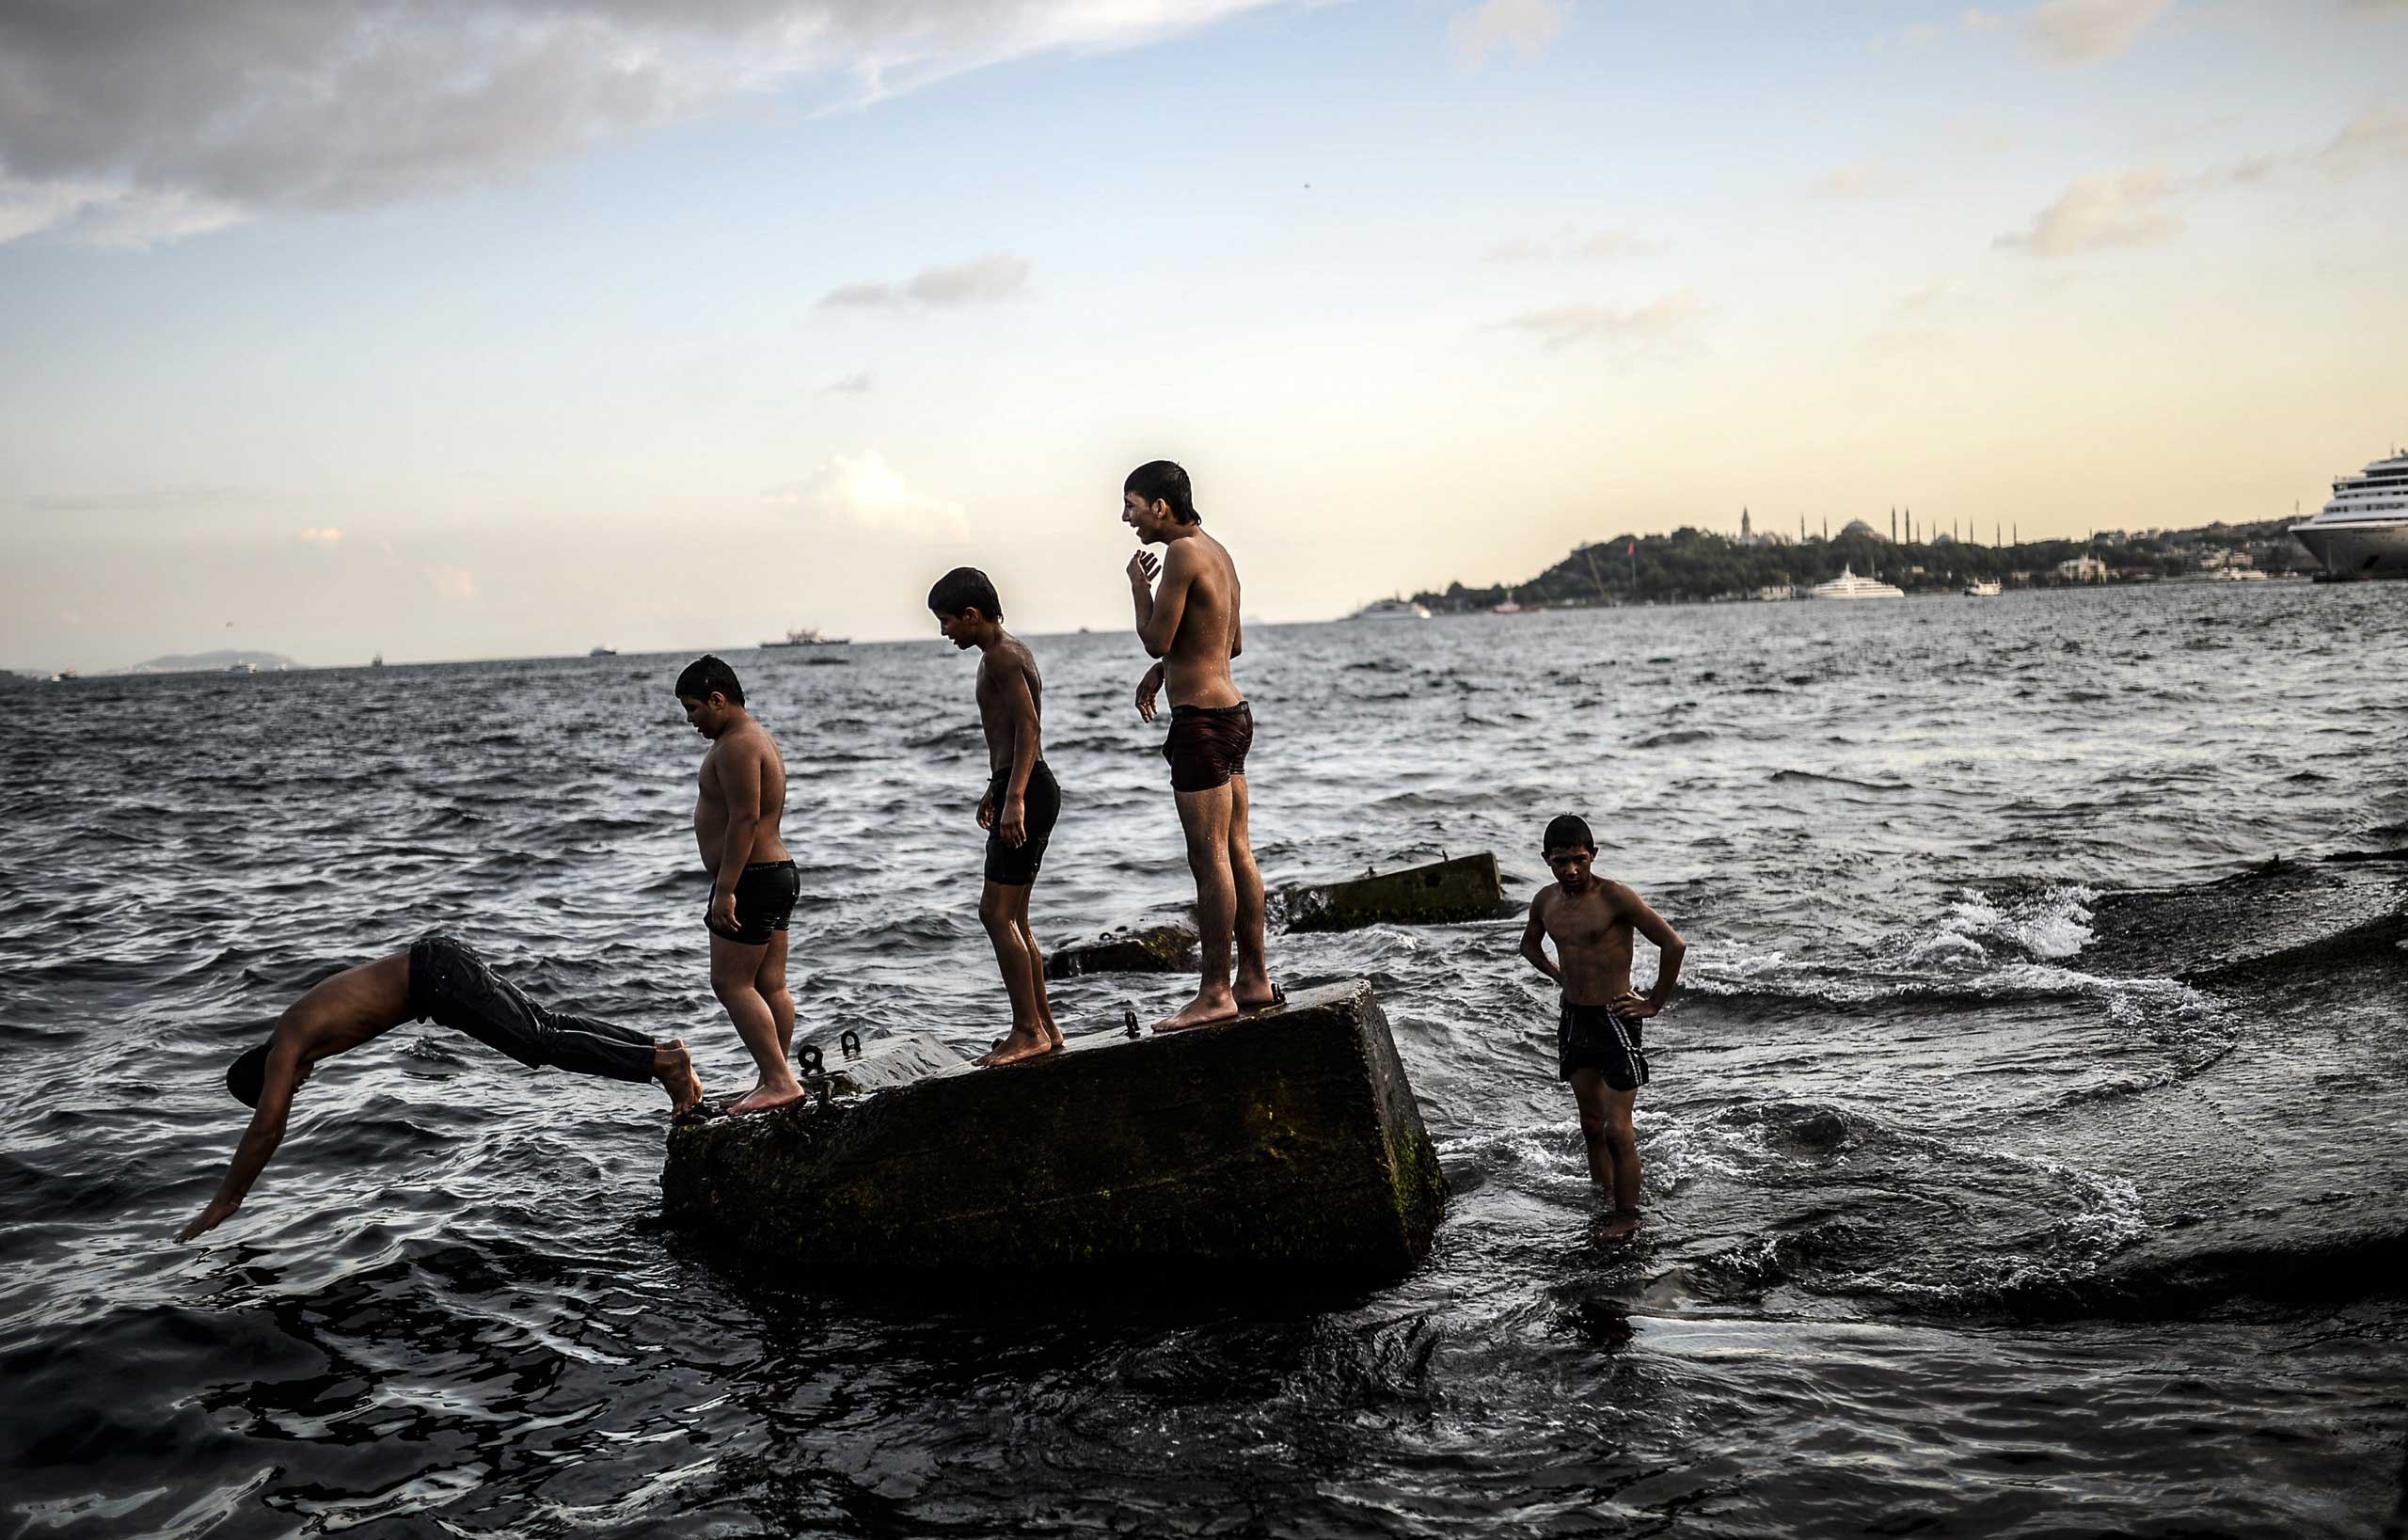 Syrian refugee boys swim in the Bosphorus on Aug. 8, 2014 at Kabatas in Istanbul, Turkey.